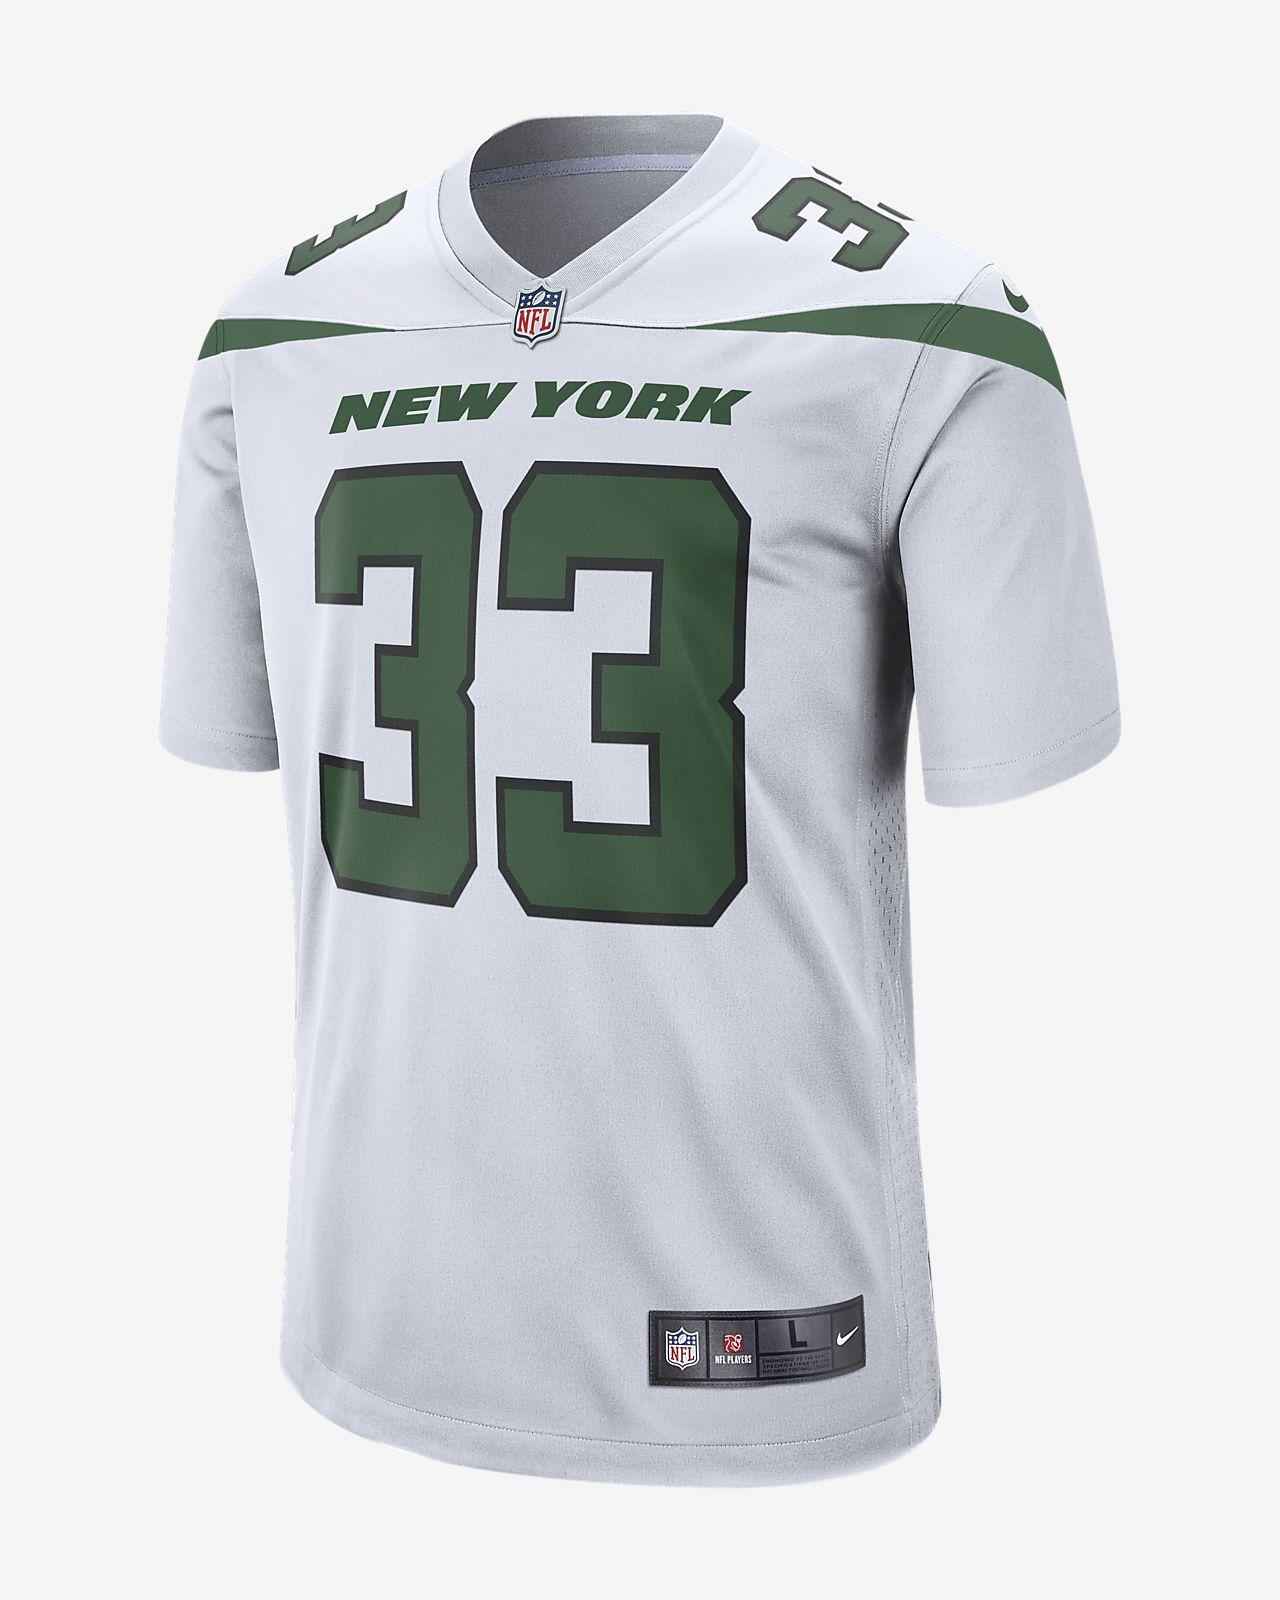 designer fashion e1f06 b0ce7 NFL New York Jets (Jamal Adams) Men's Game Football Jersey